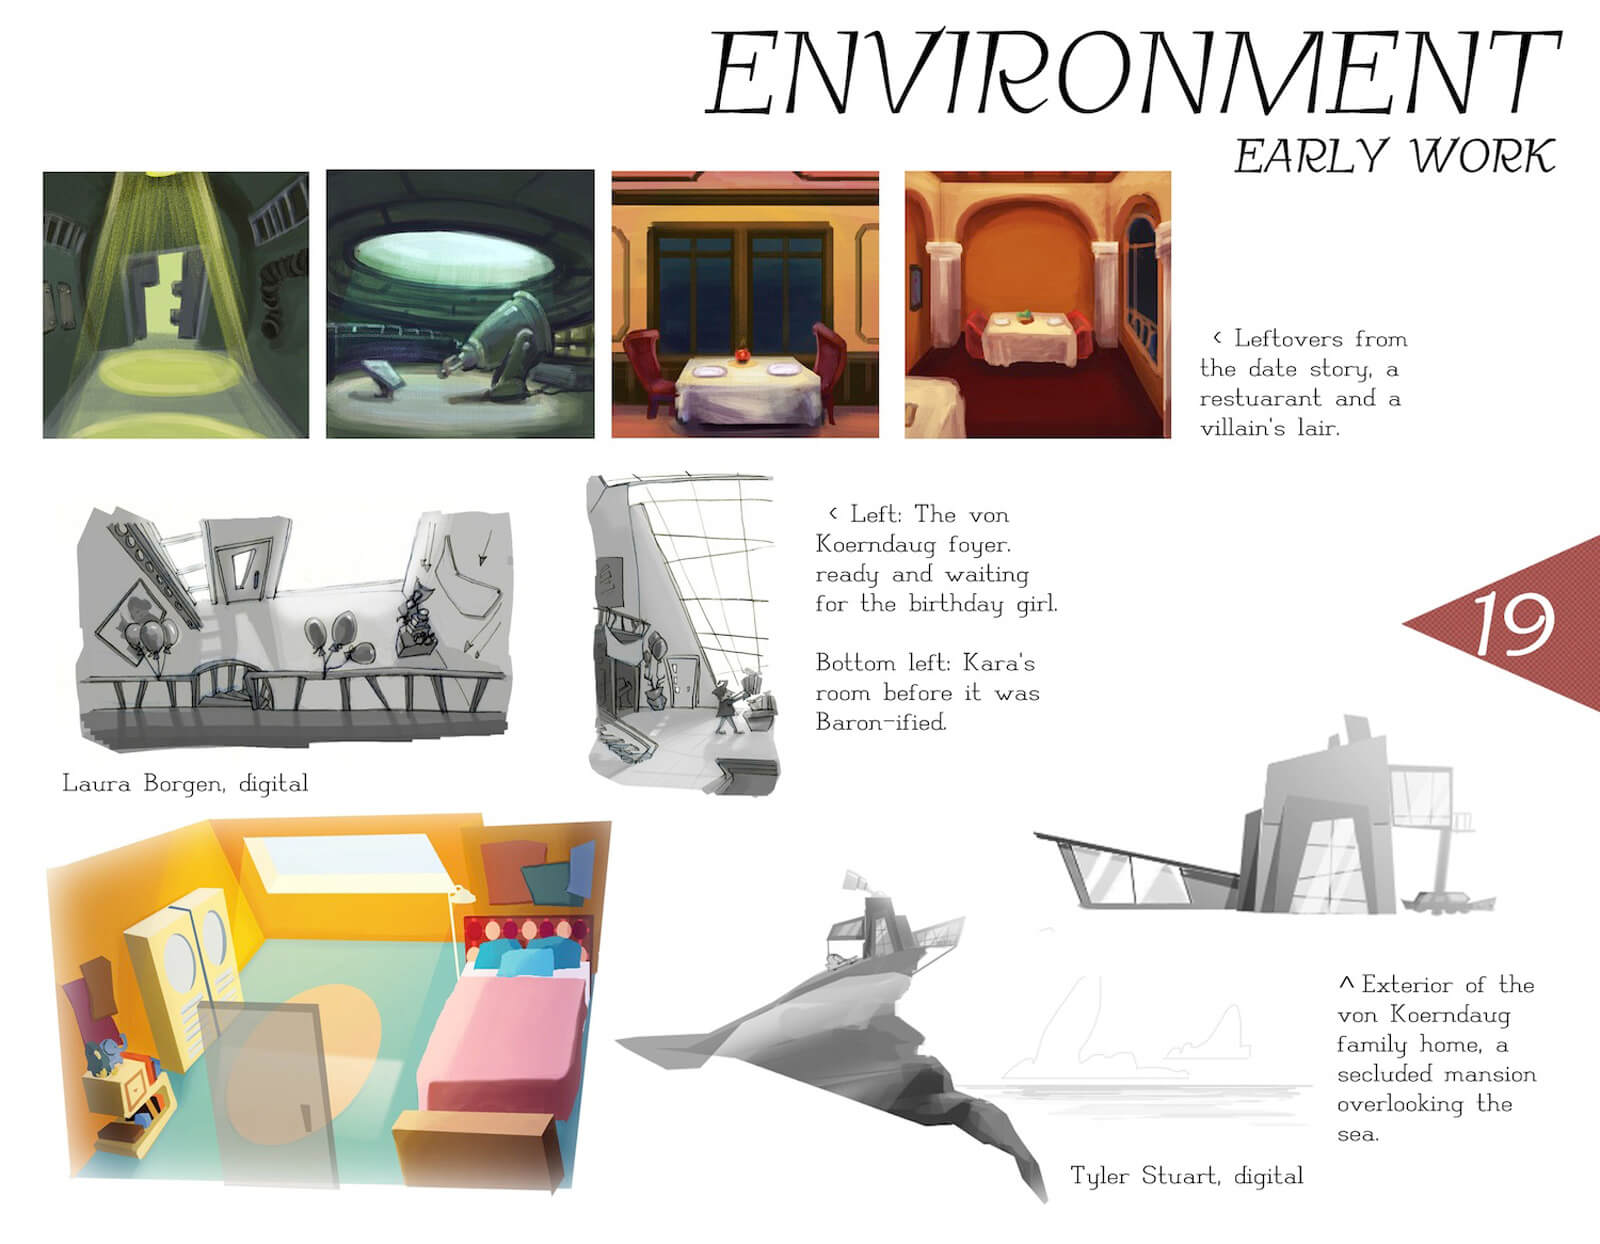 Early concept art of the environment in the film Super Secret, including unused restaurant and villain's lair settings